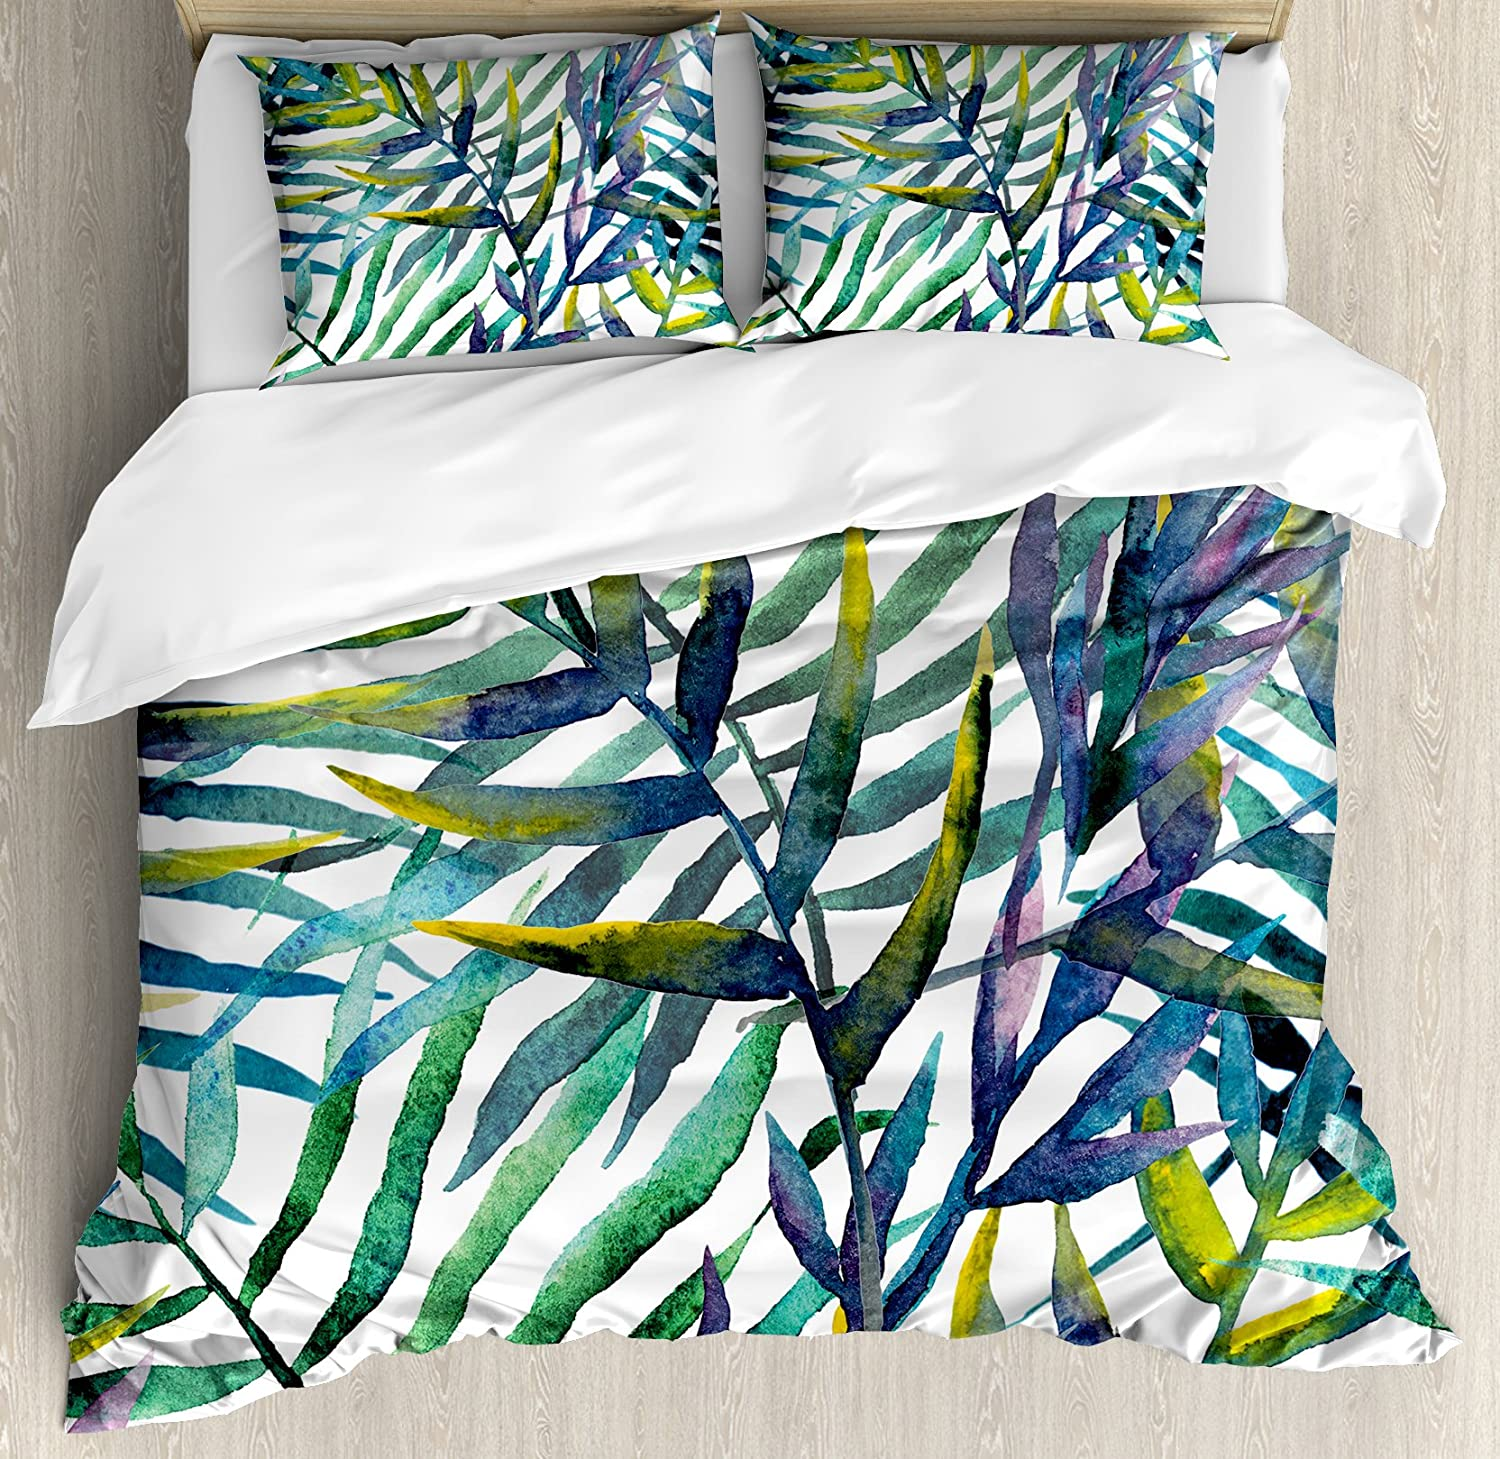 Leaf Duvet Cover Set Queen Size by Ambesonne, Watercolor Artwork of Tropical Island Vegetation Colorful Palm Leaves